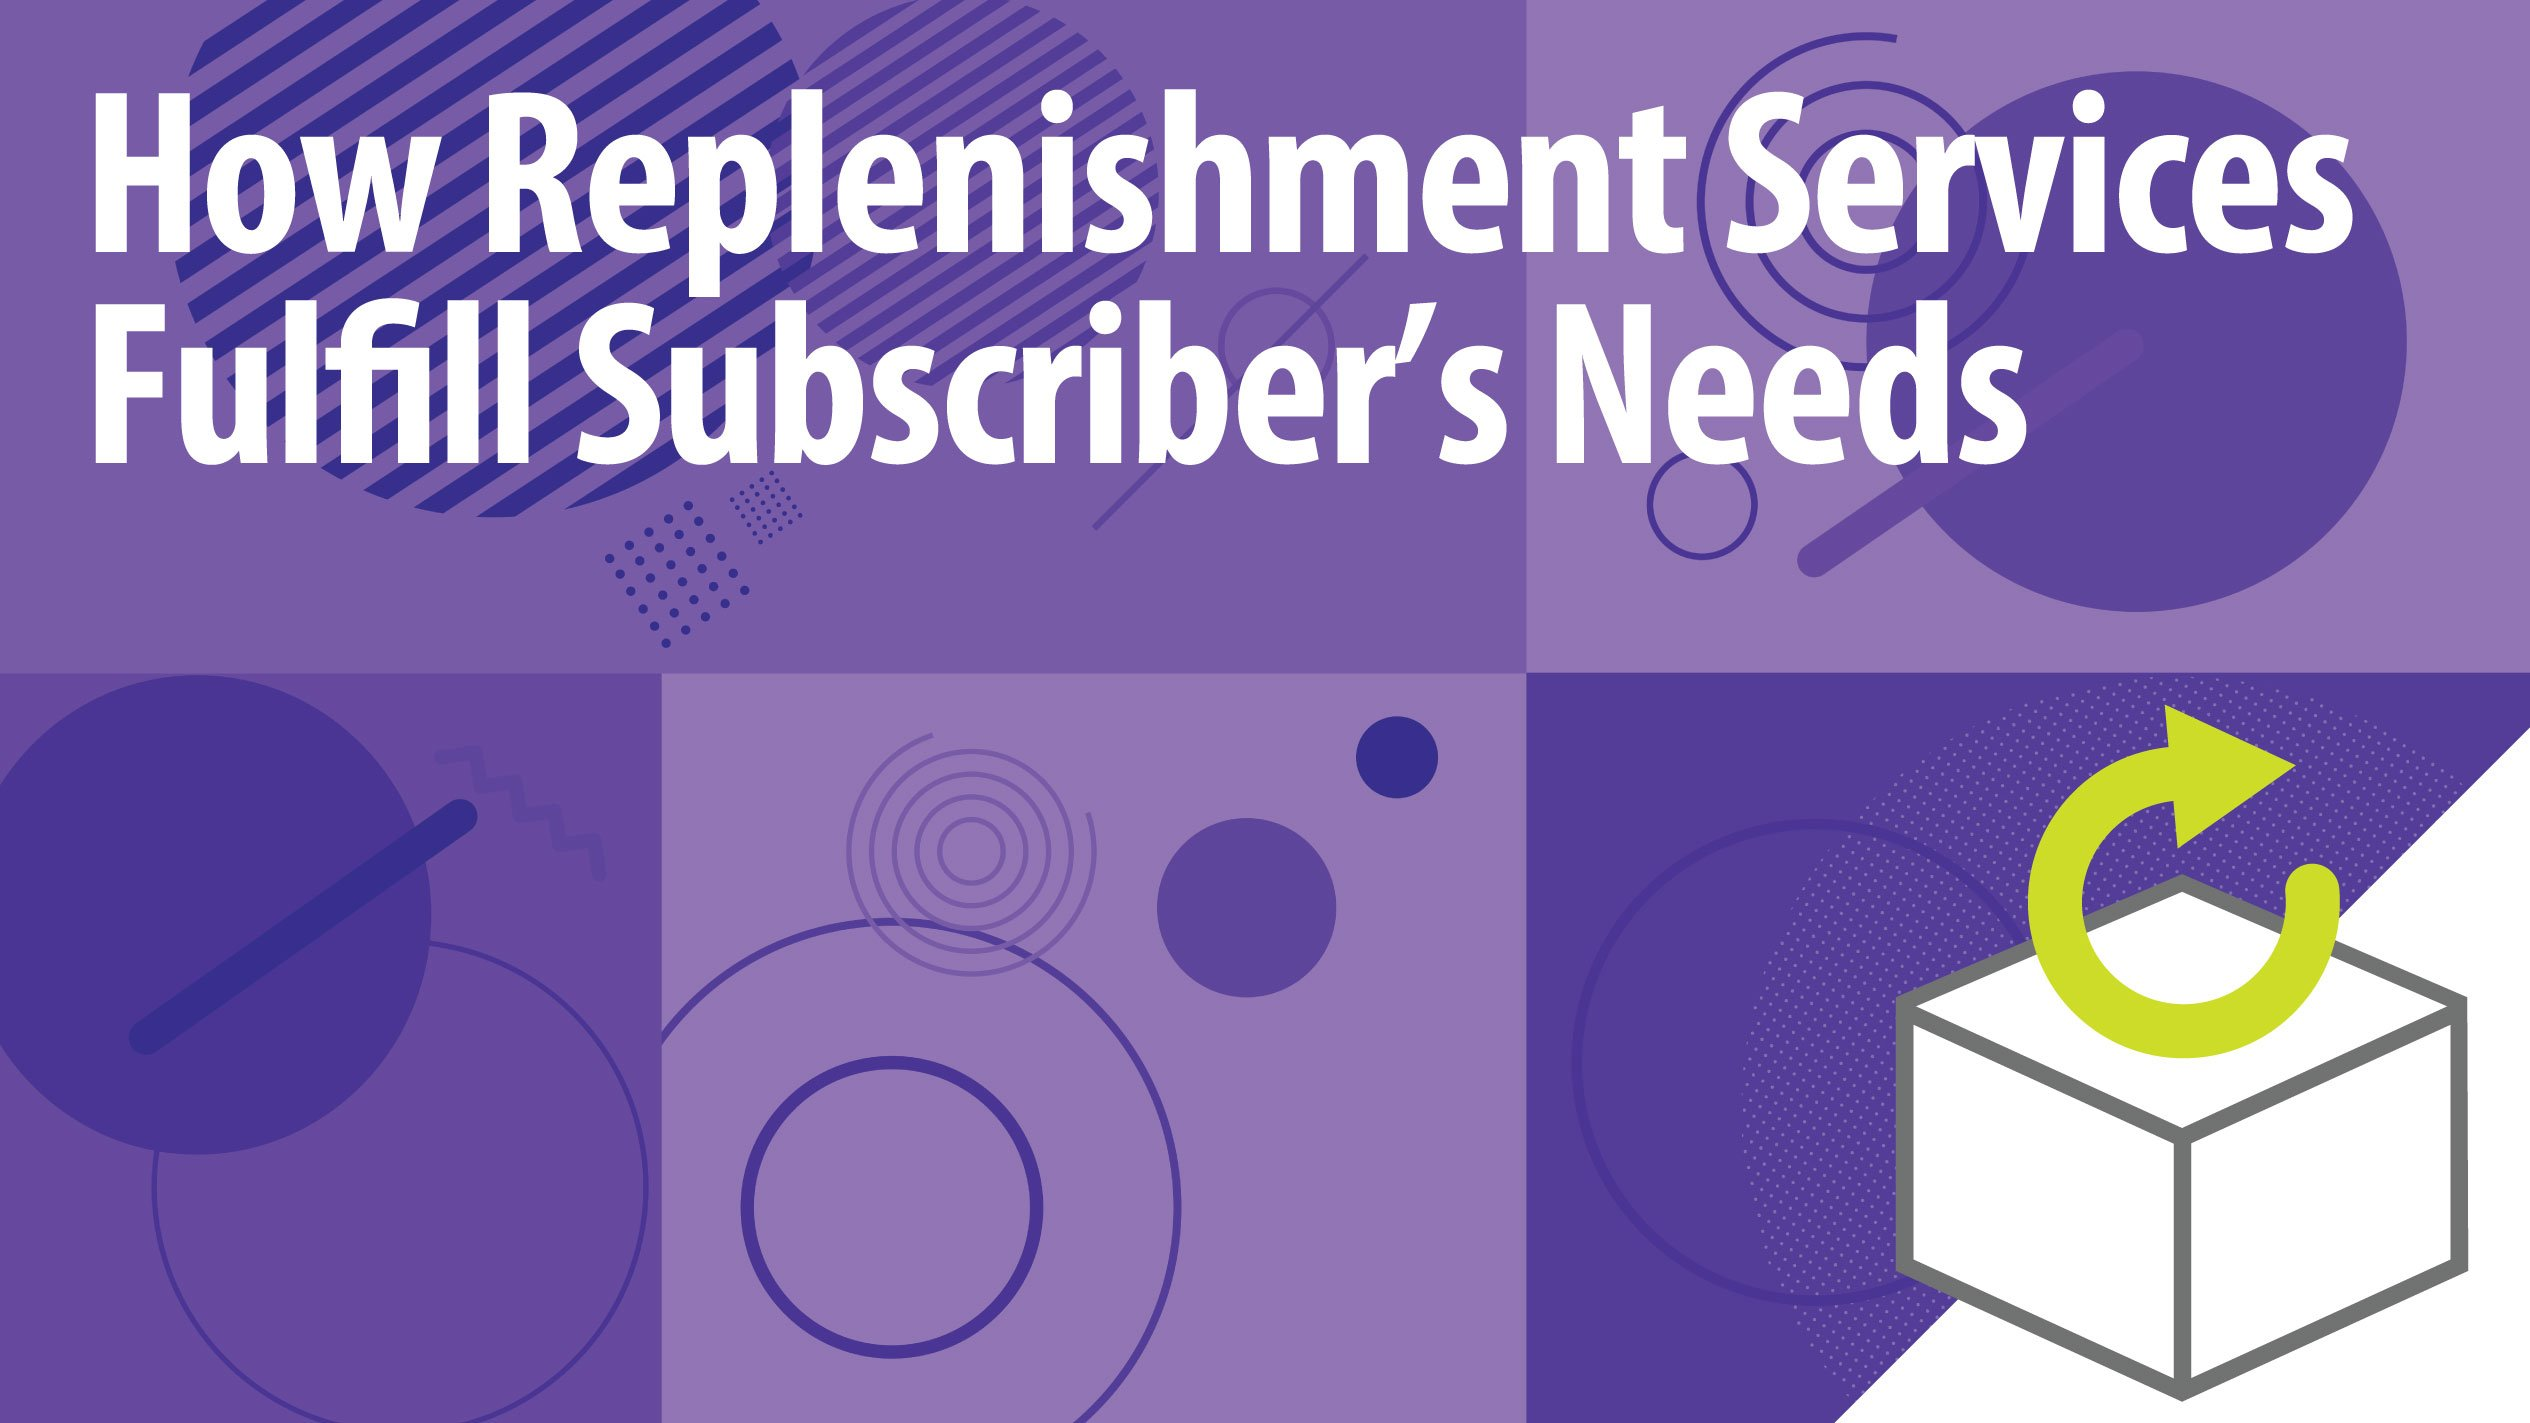 How Replenishment Services Fulfill Subscriber's Needs